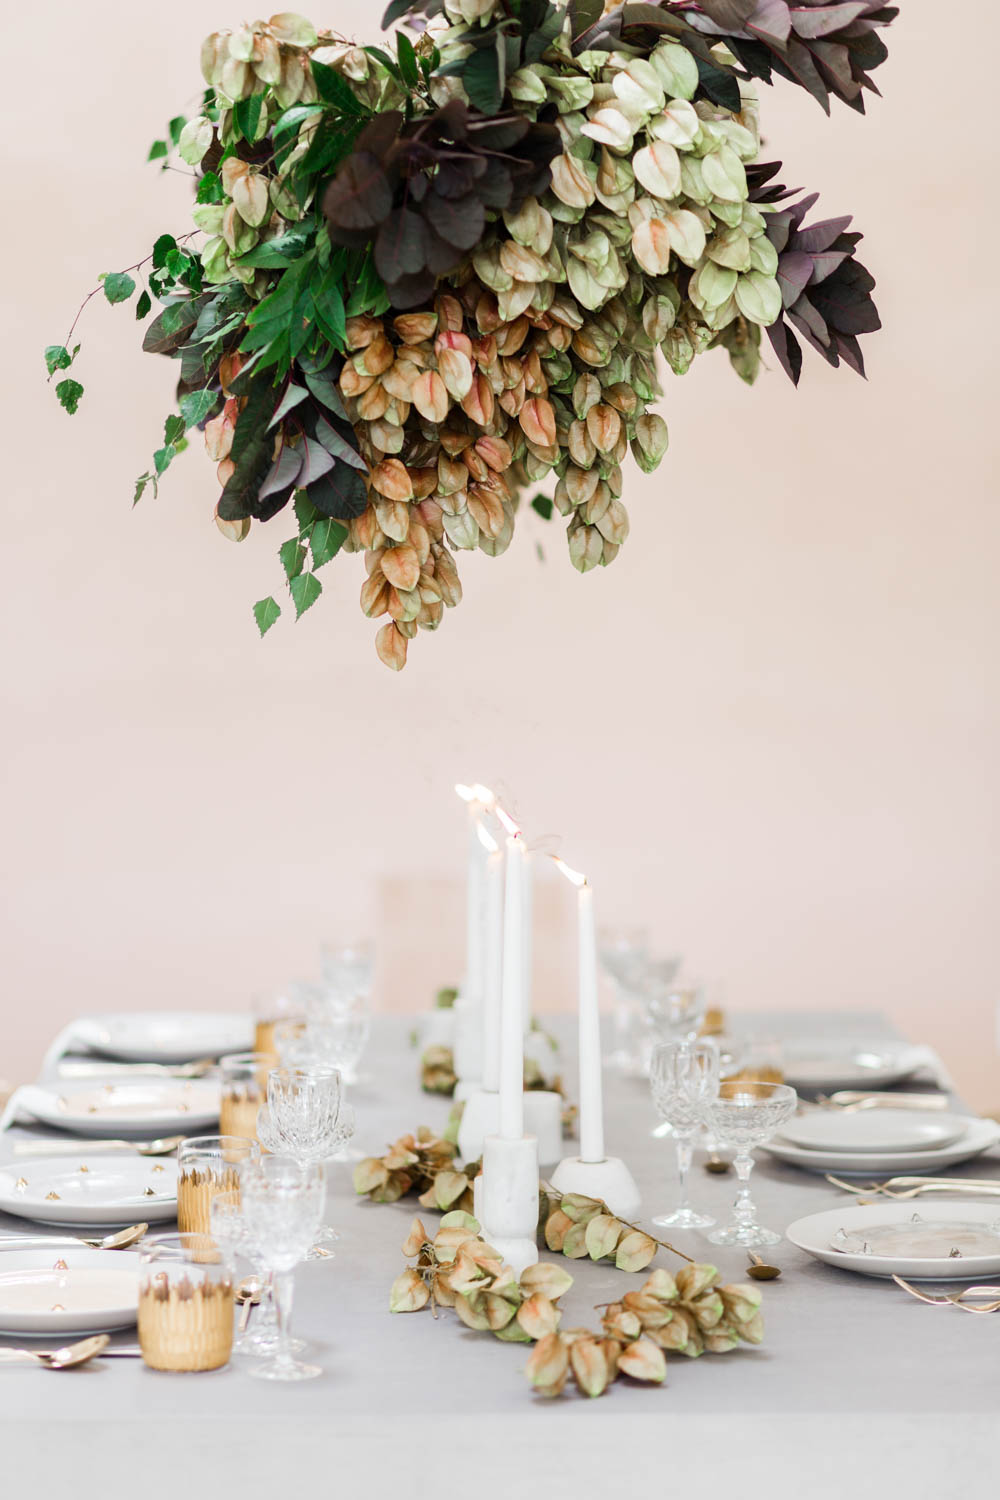 Grey black and pink wedding inspiration tablescape with hanging floral installation, Cavin Elizabeth and Amorology